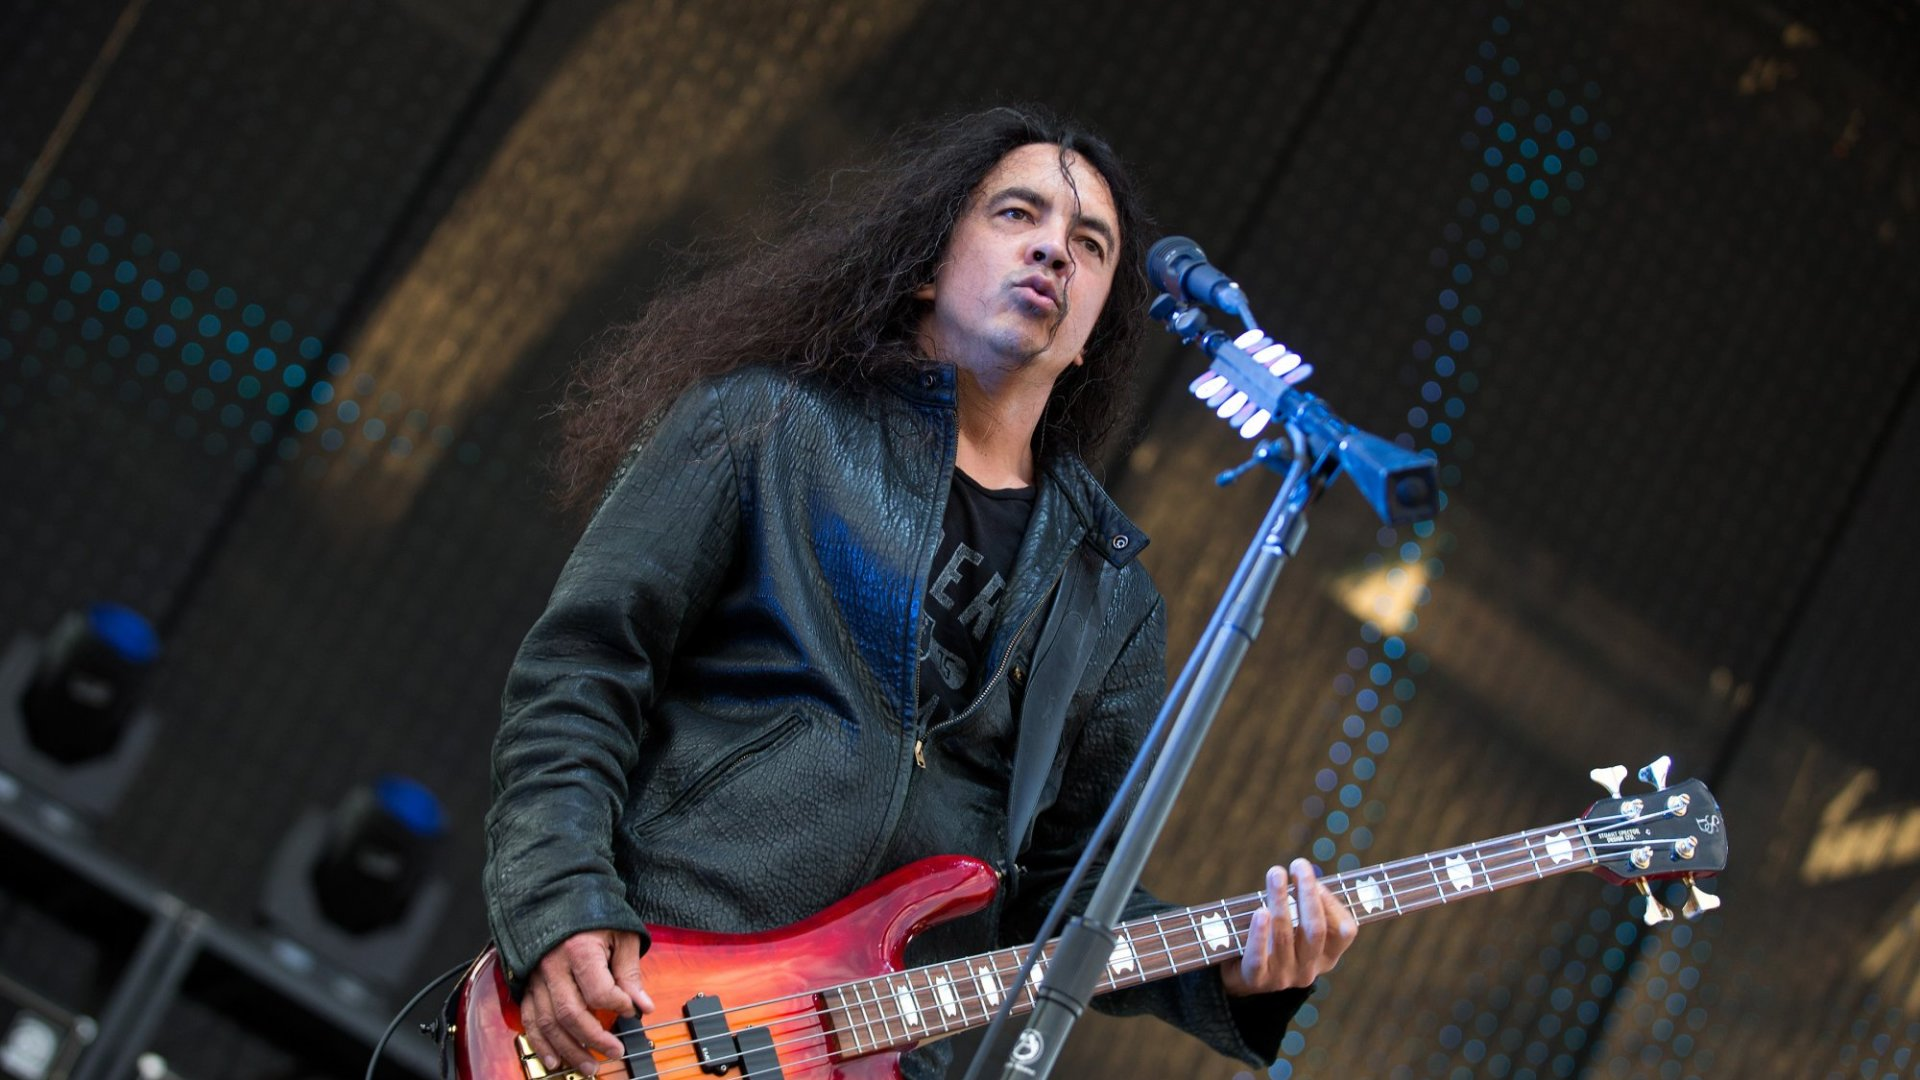 This Rock Star Makes Dreams Come True: Mike Inez at Rock and Roll Fantasy Camp